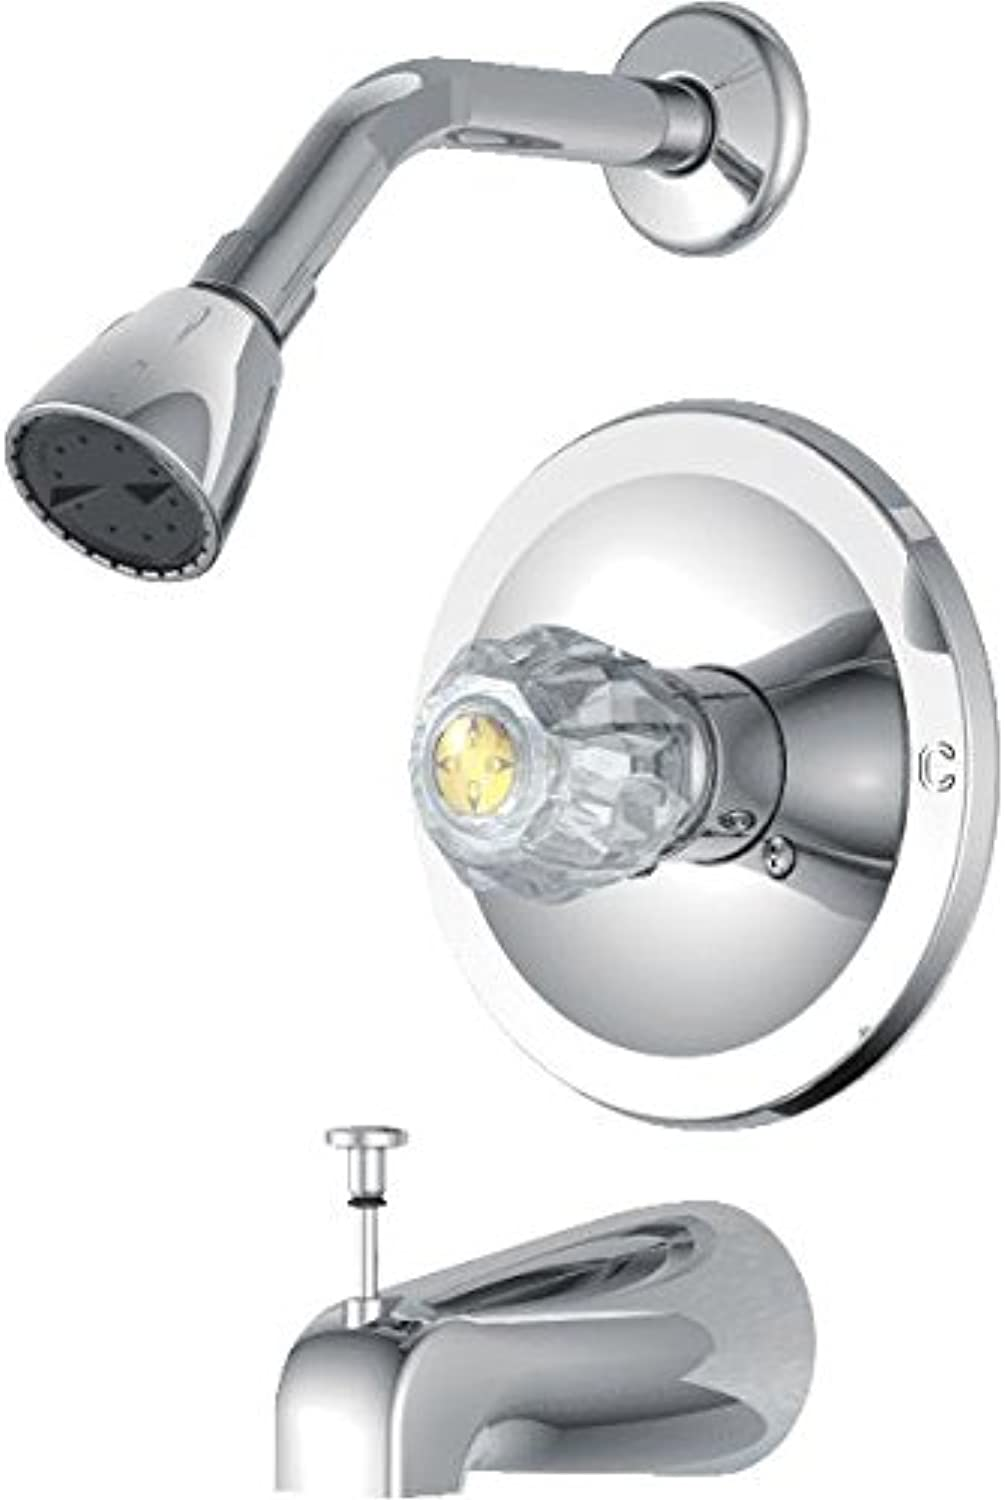 Do it Best Single Acrylic Handle Tub And Shower Faucet CHR TUB SHOWER FAUCET